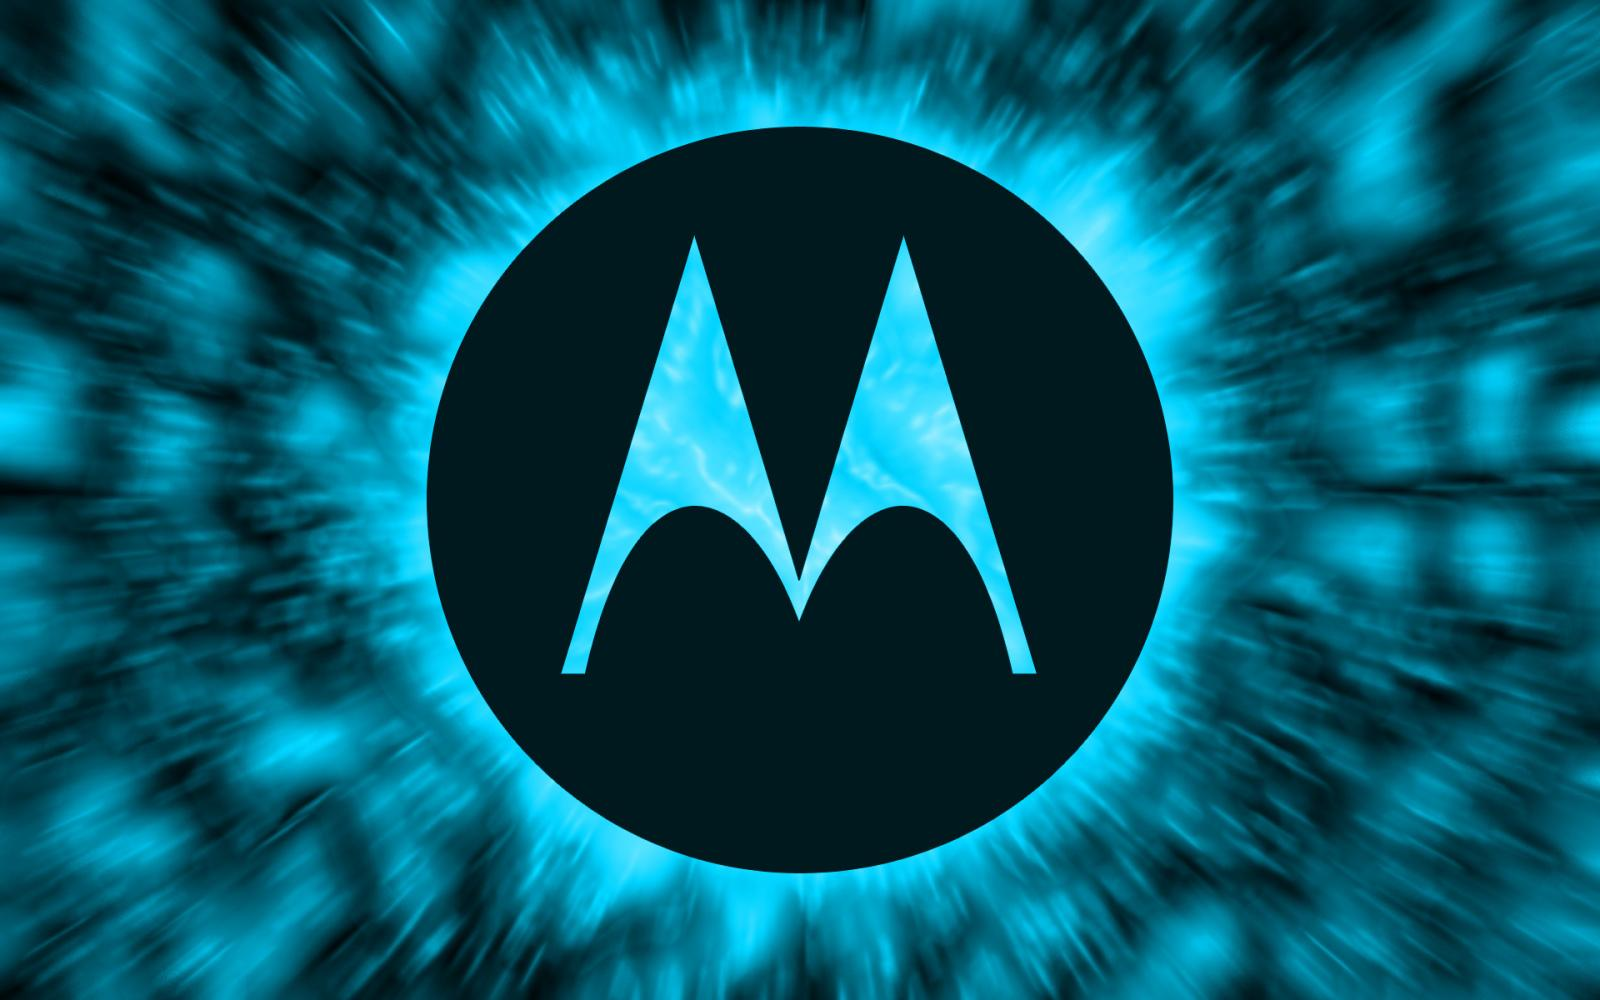 Love Wallpaper Moto E : Motorola Wallpapers - Wallpaper cave